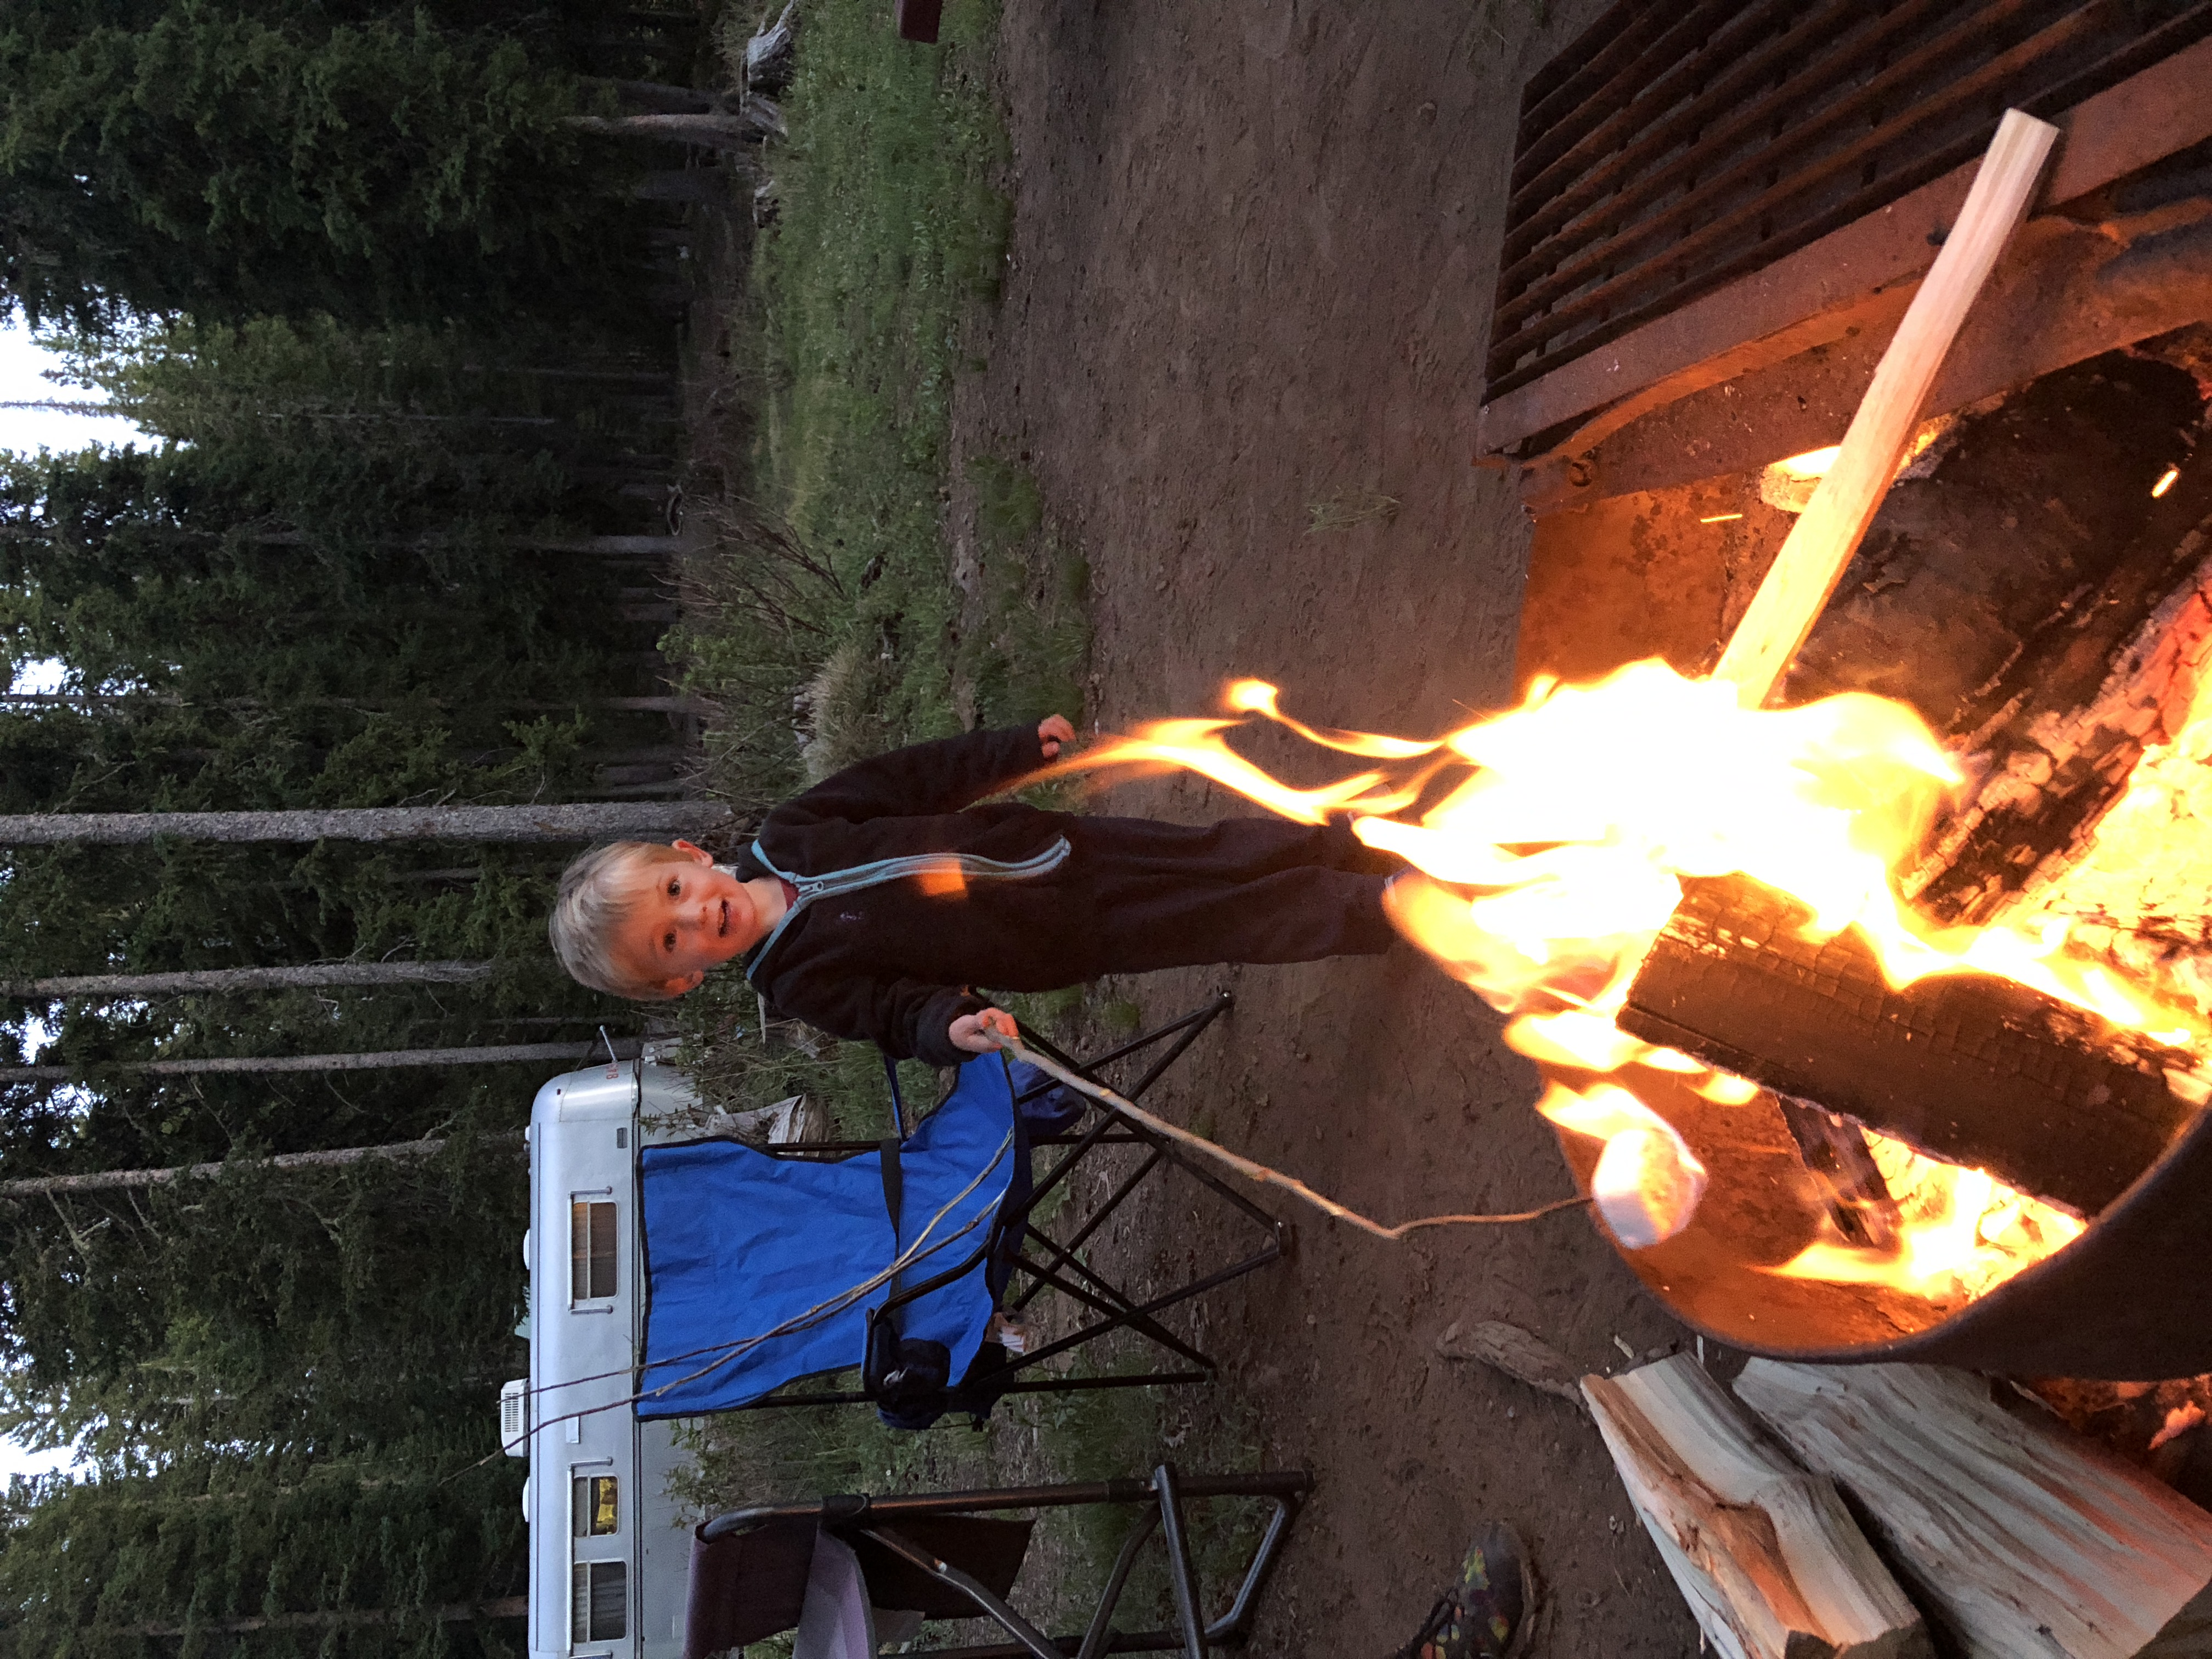 The Seven Leave No Trace Principles with Camp Host Gail Bable